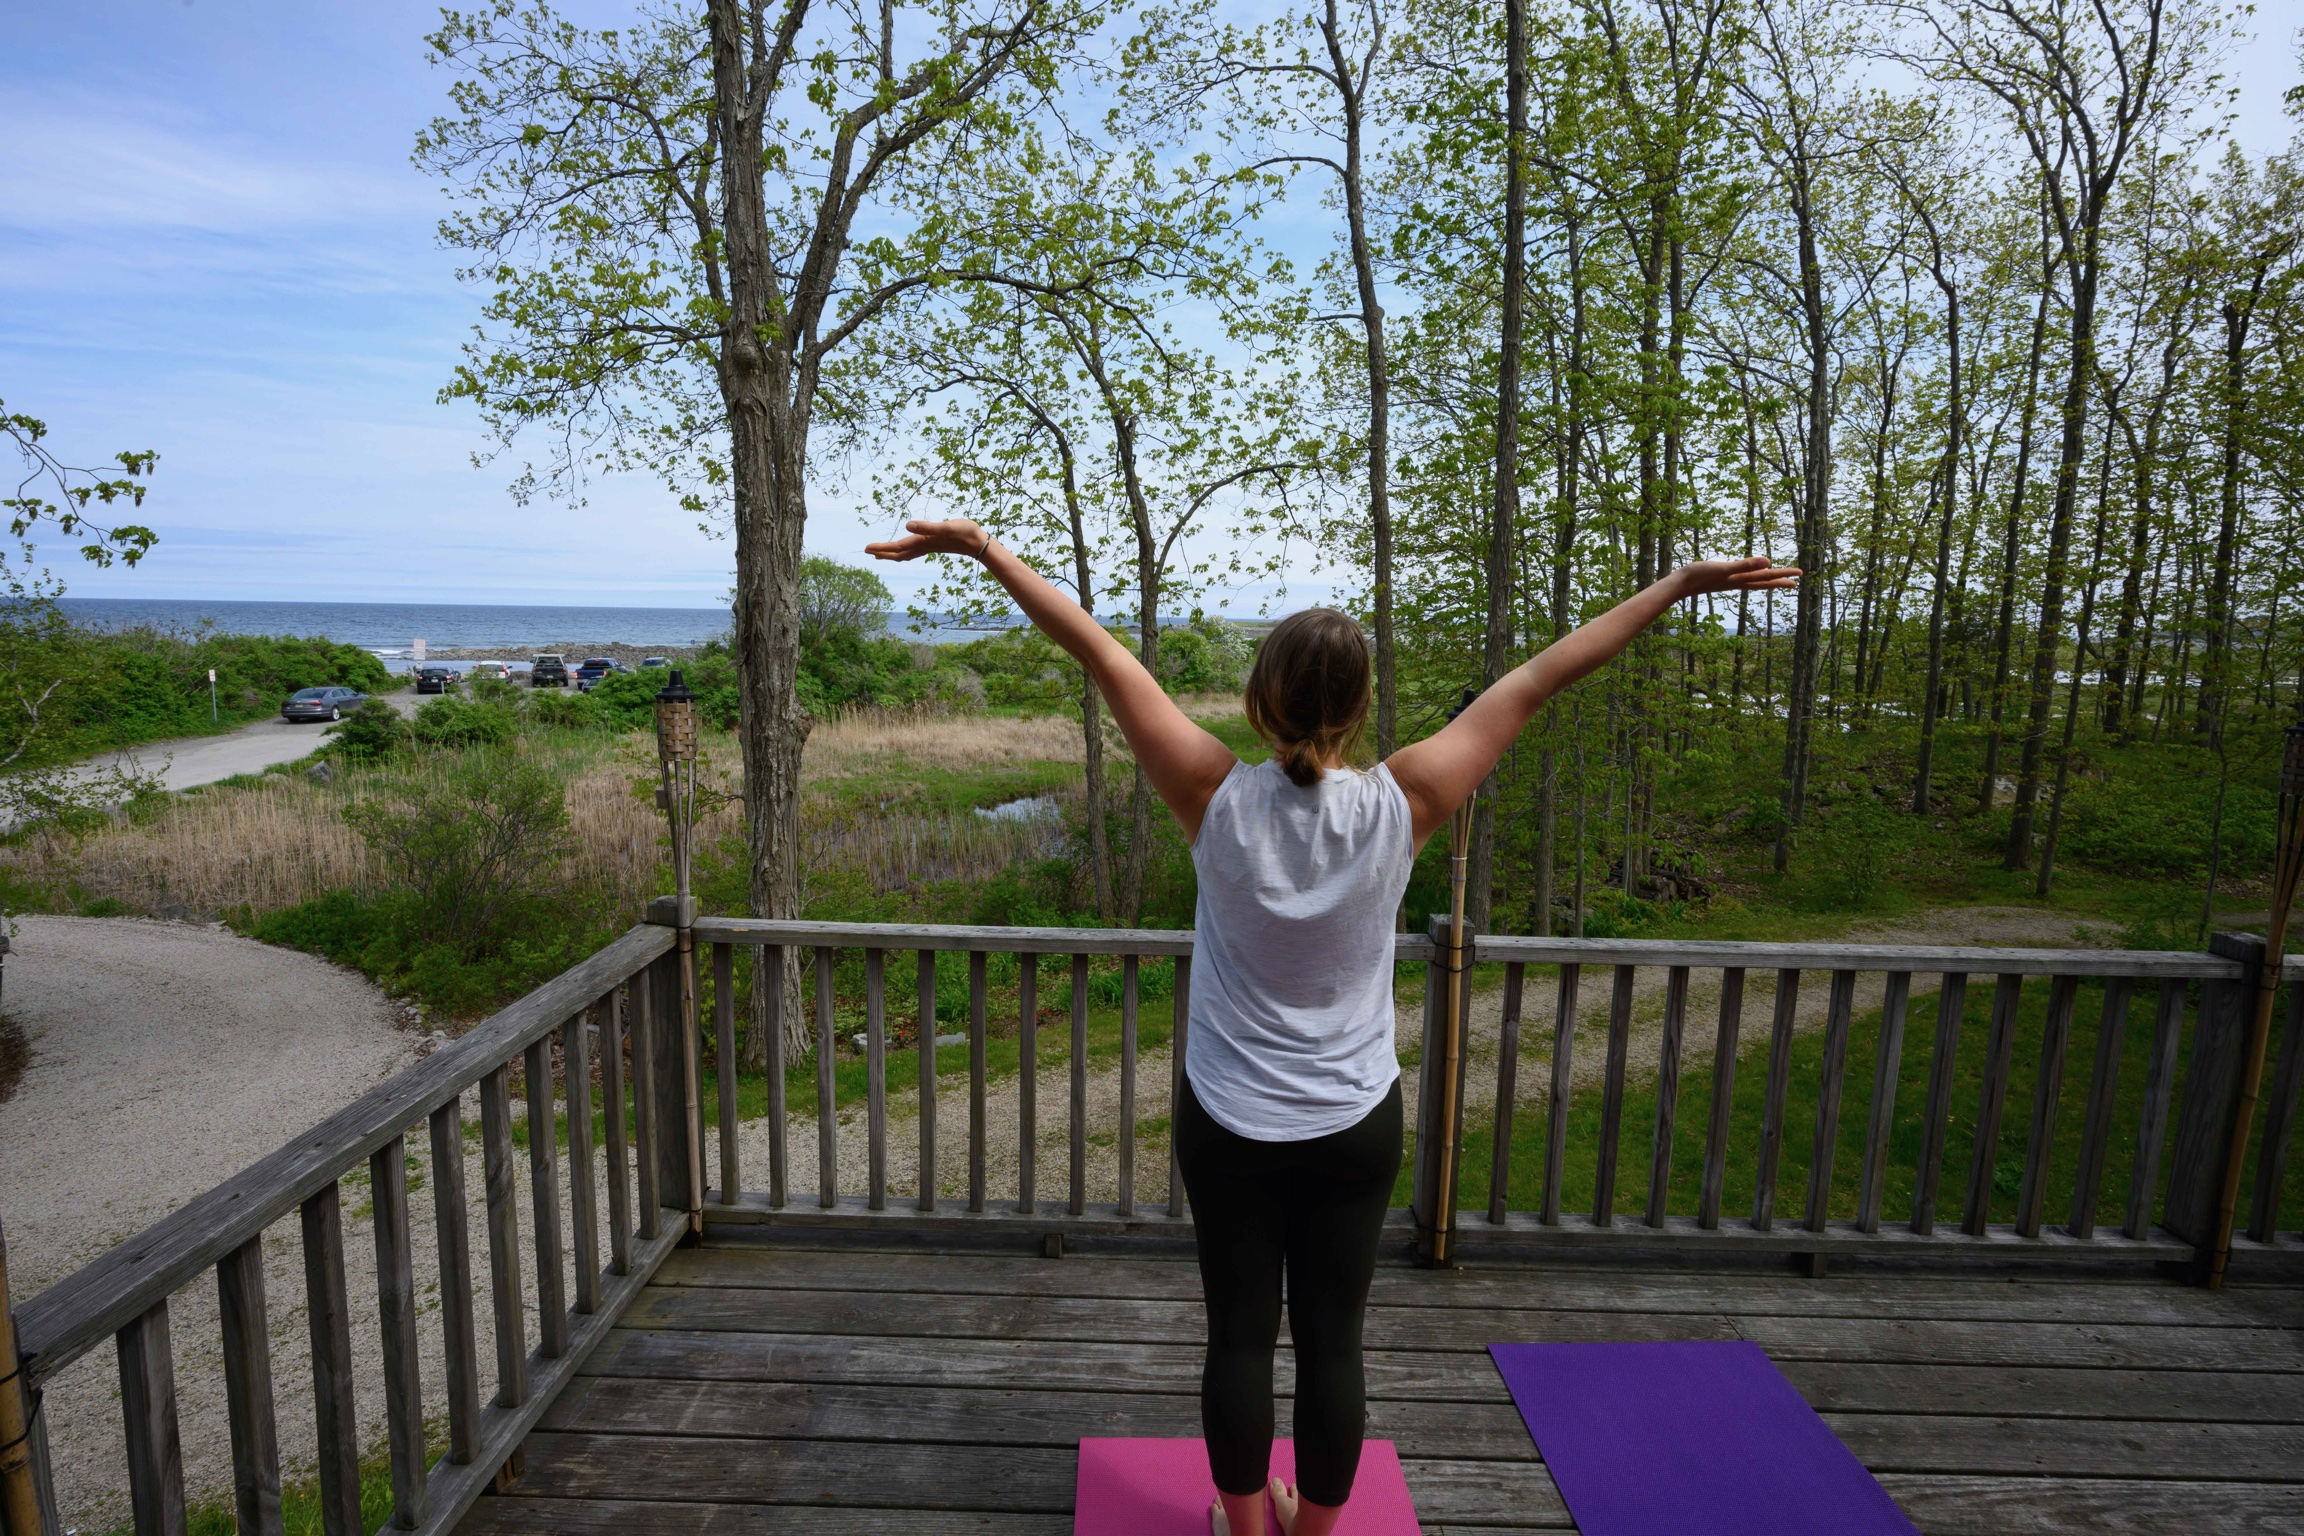 My next retreat will be in Maine - will you join me?